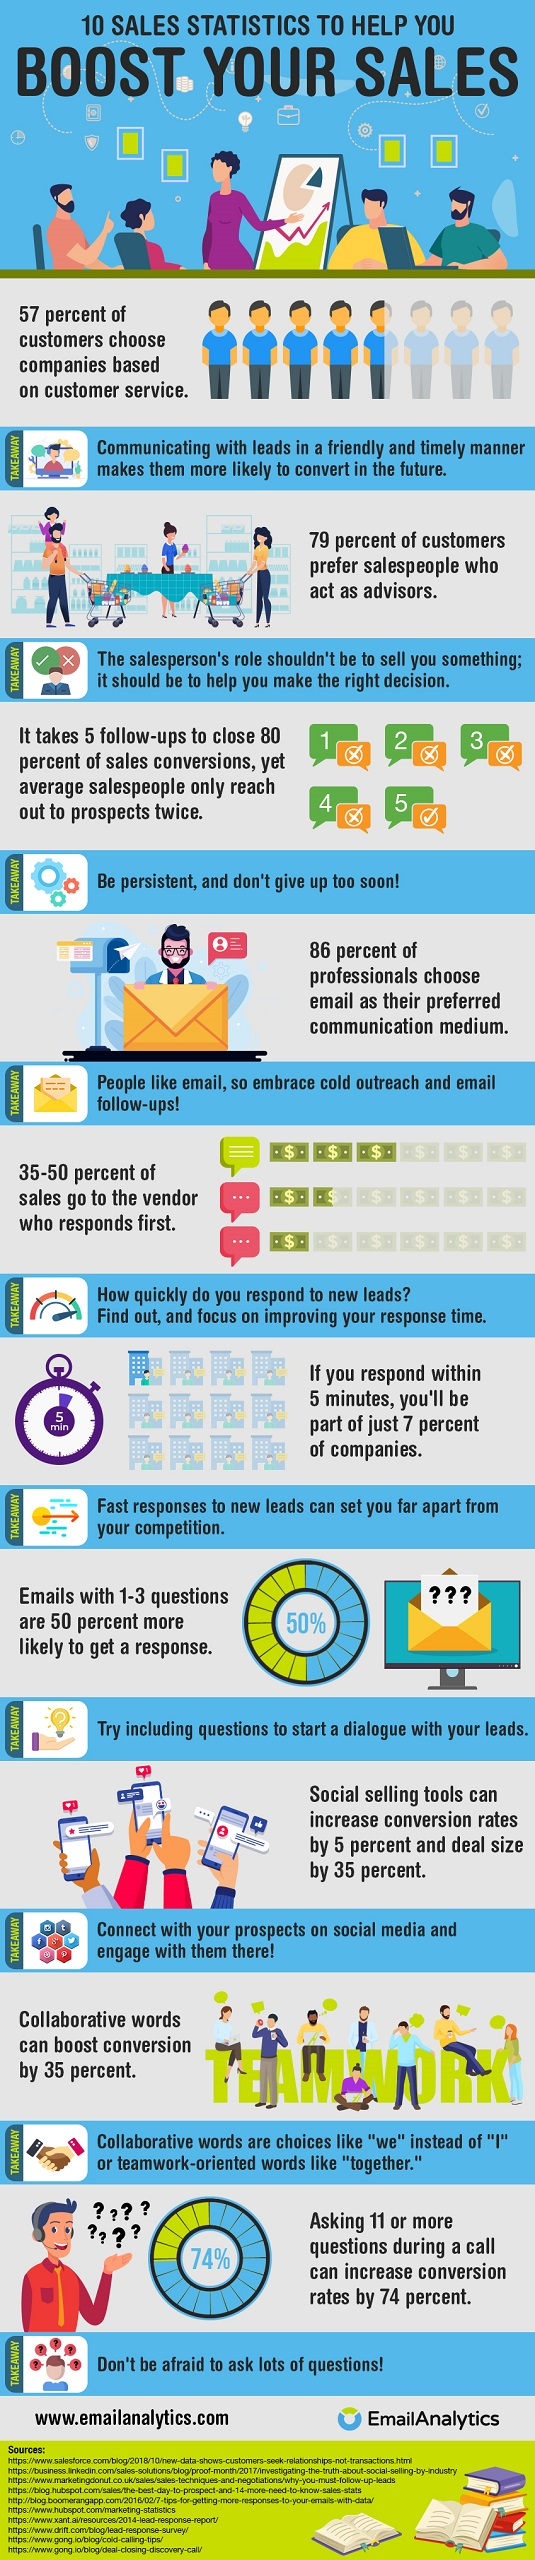 10 Sales Statistics to Help You Boost Your Sales Infographic